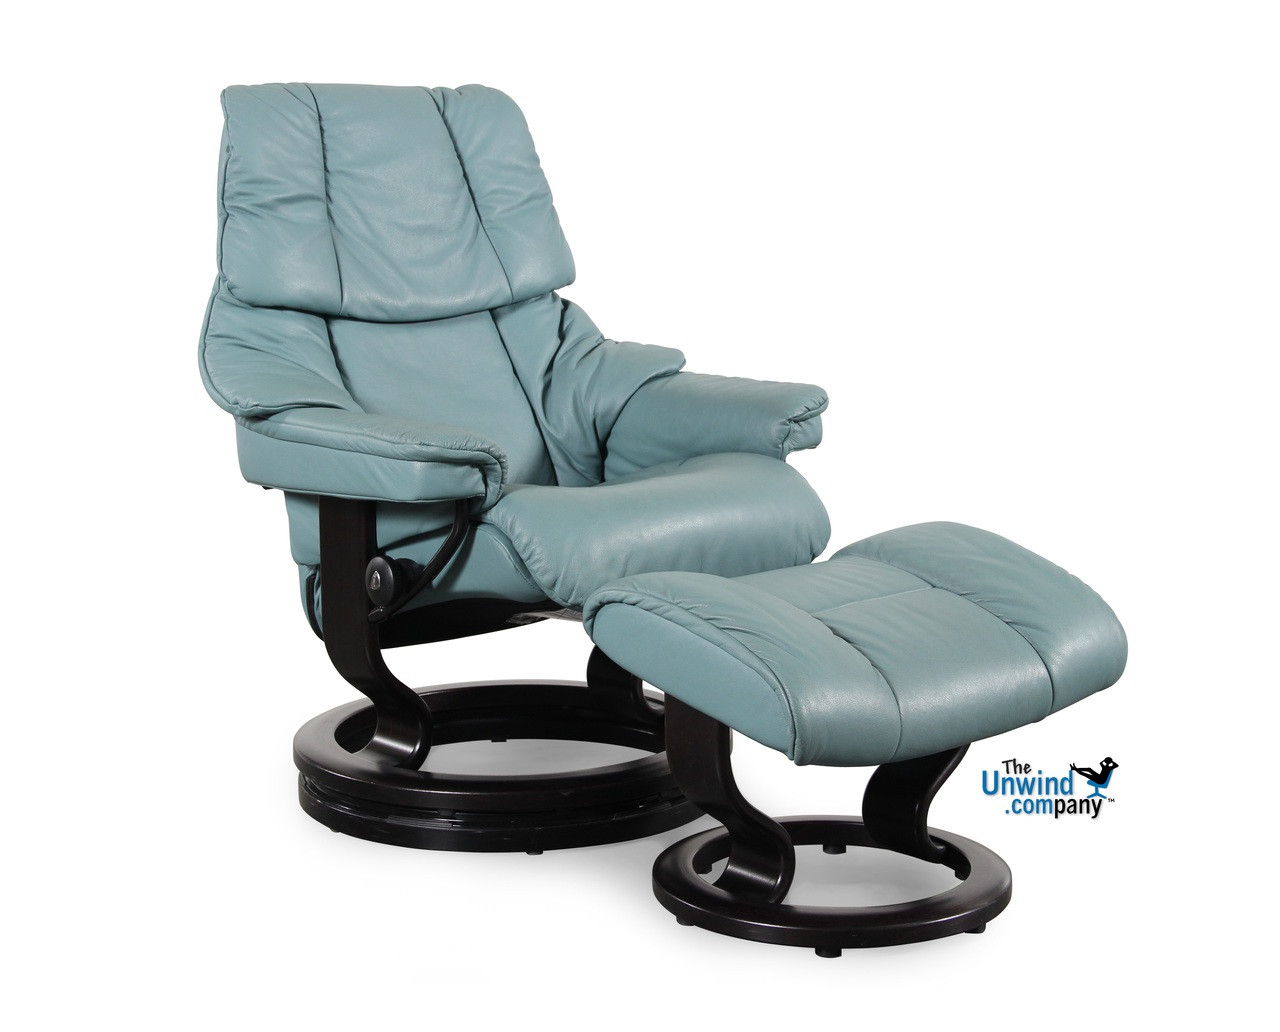 Ekornes Stressless Reno Recliners Chairs Stress Free Delivery